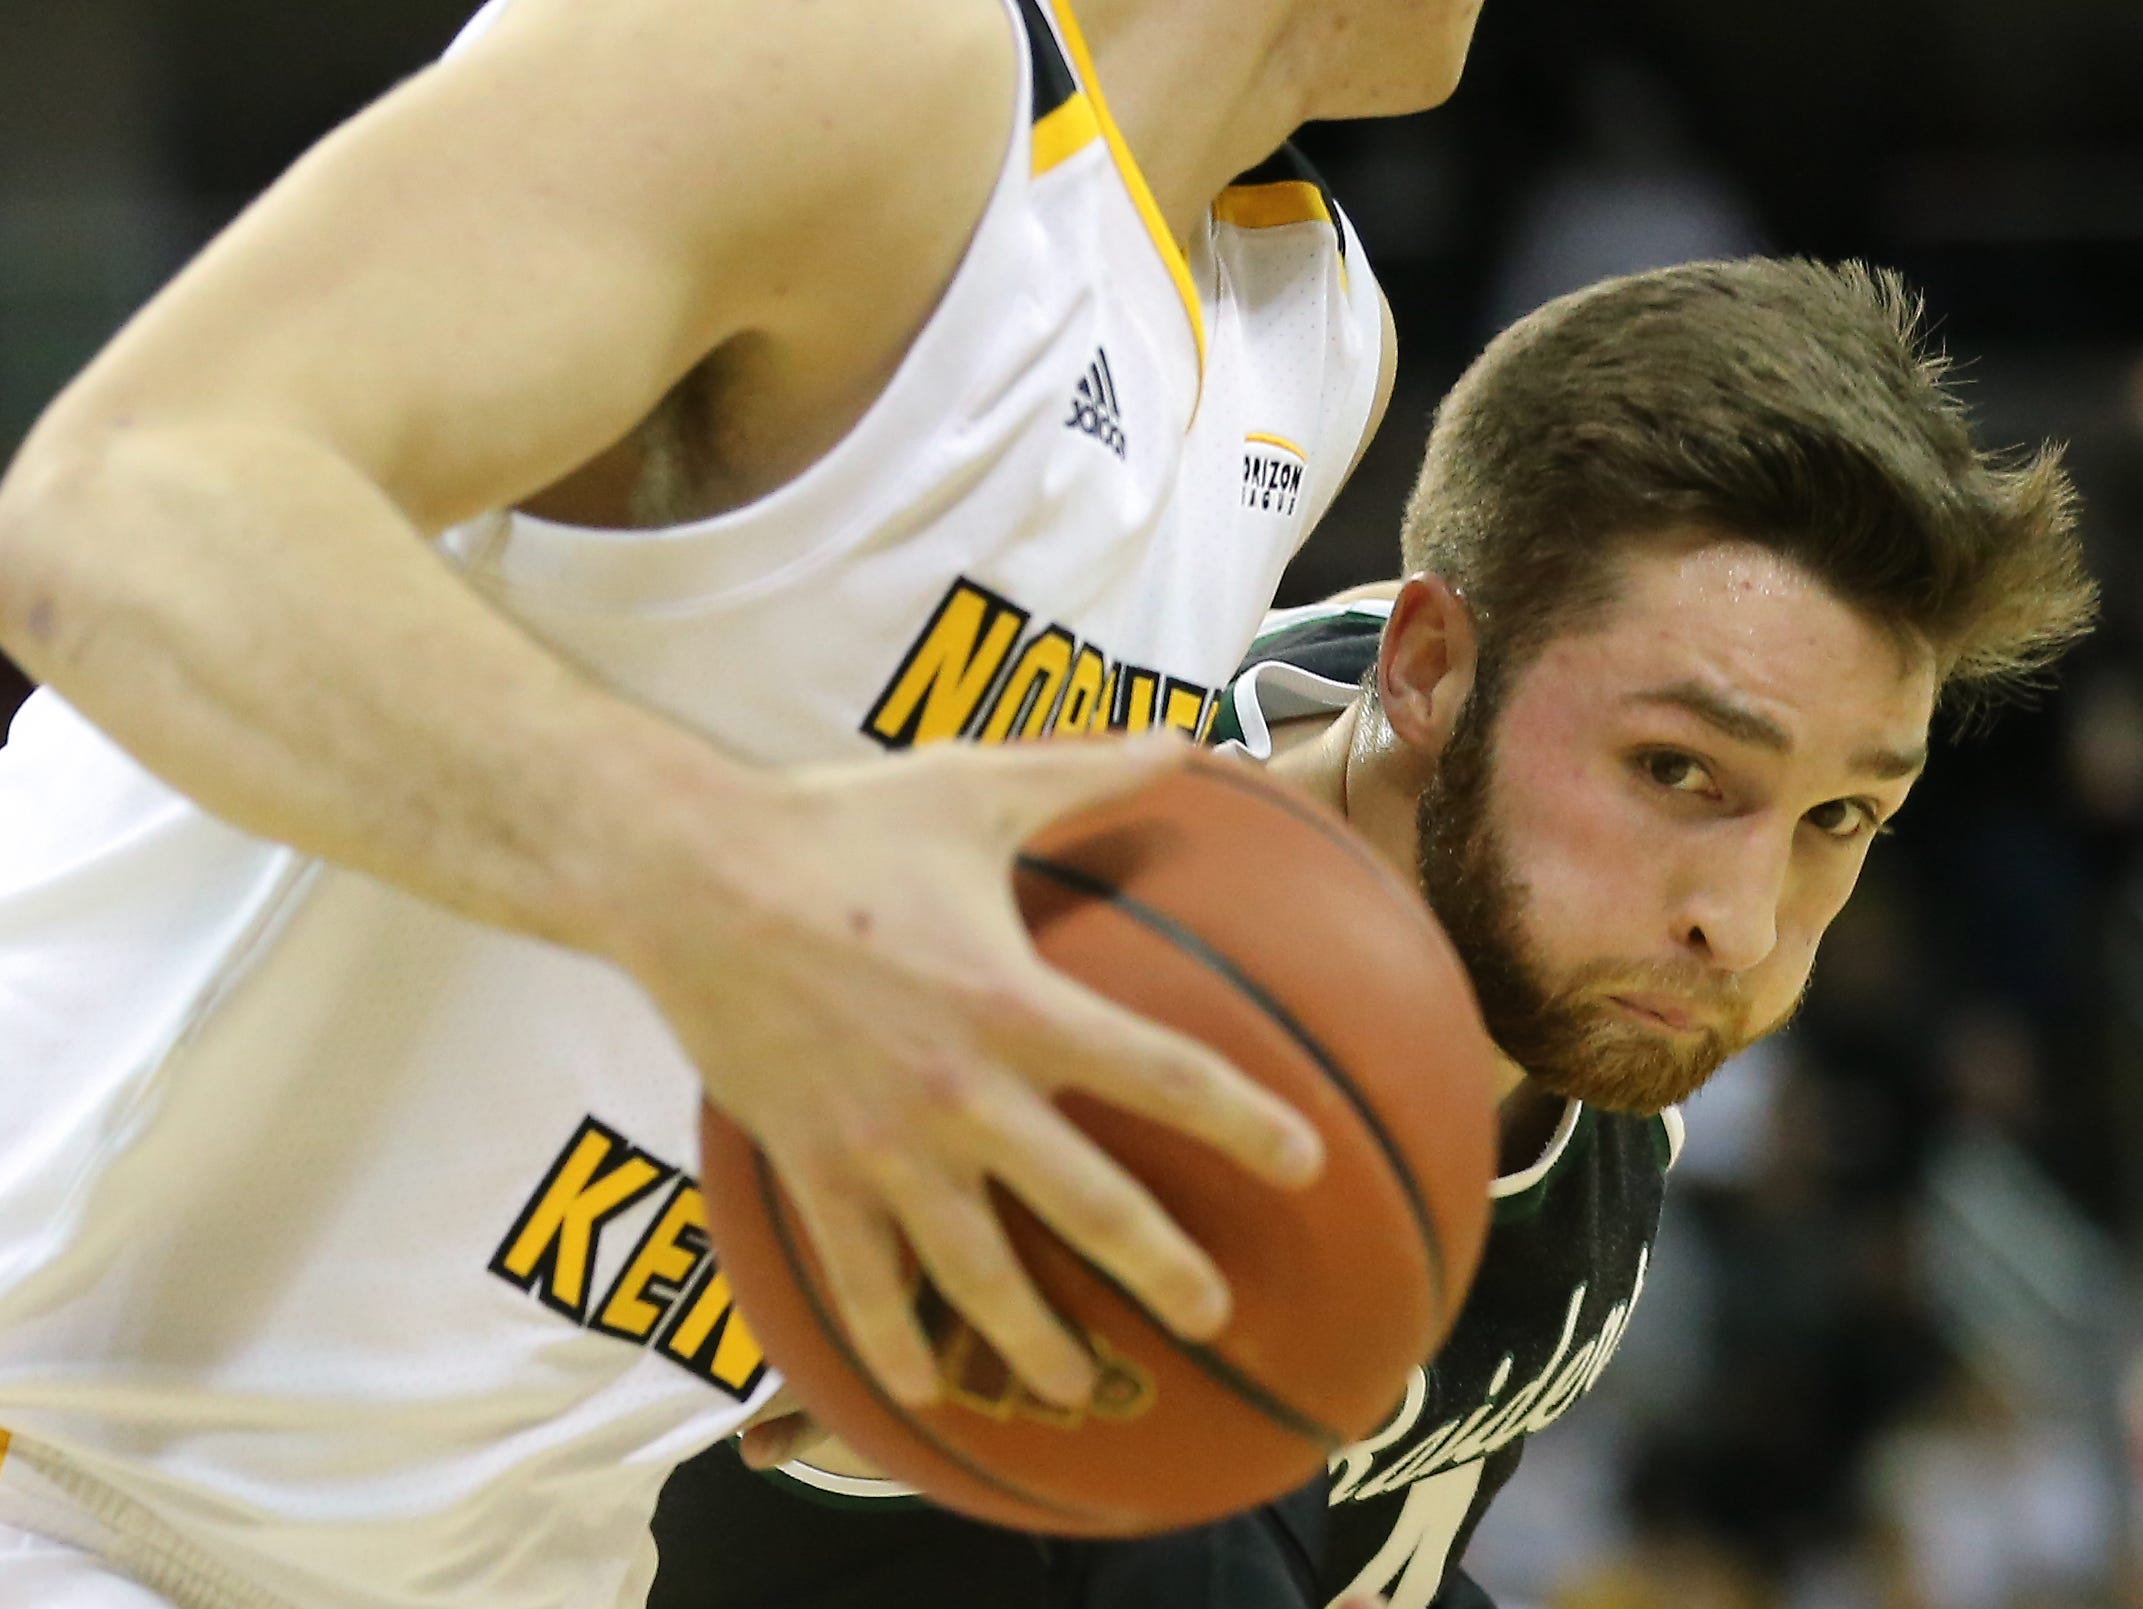 Wright State guard Alan Vest goes for the steal on Norse forward Drew McDonald in the first half on Friday.